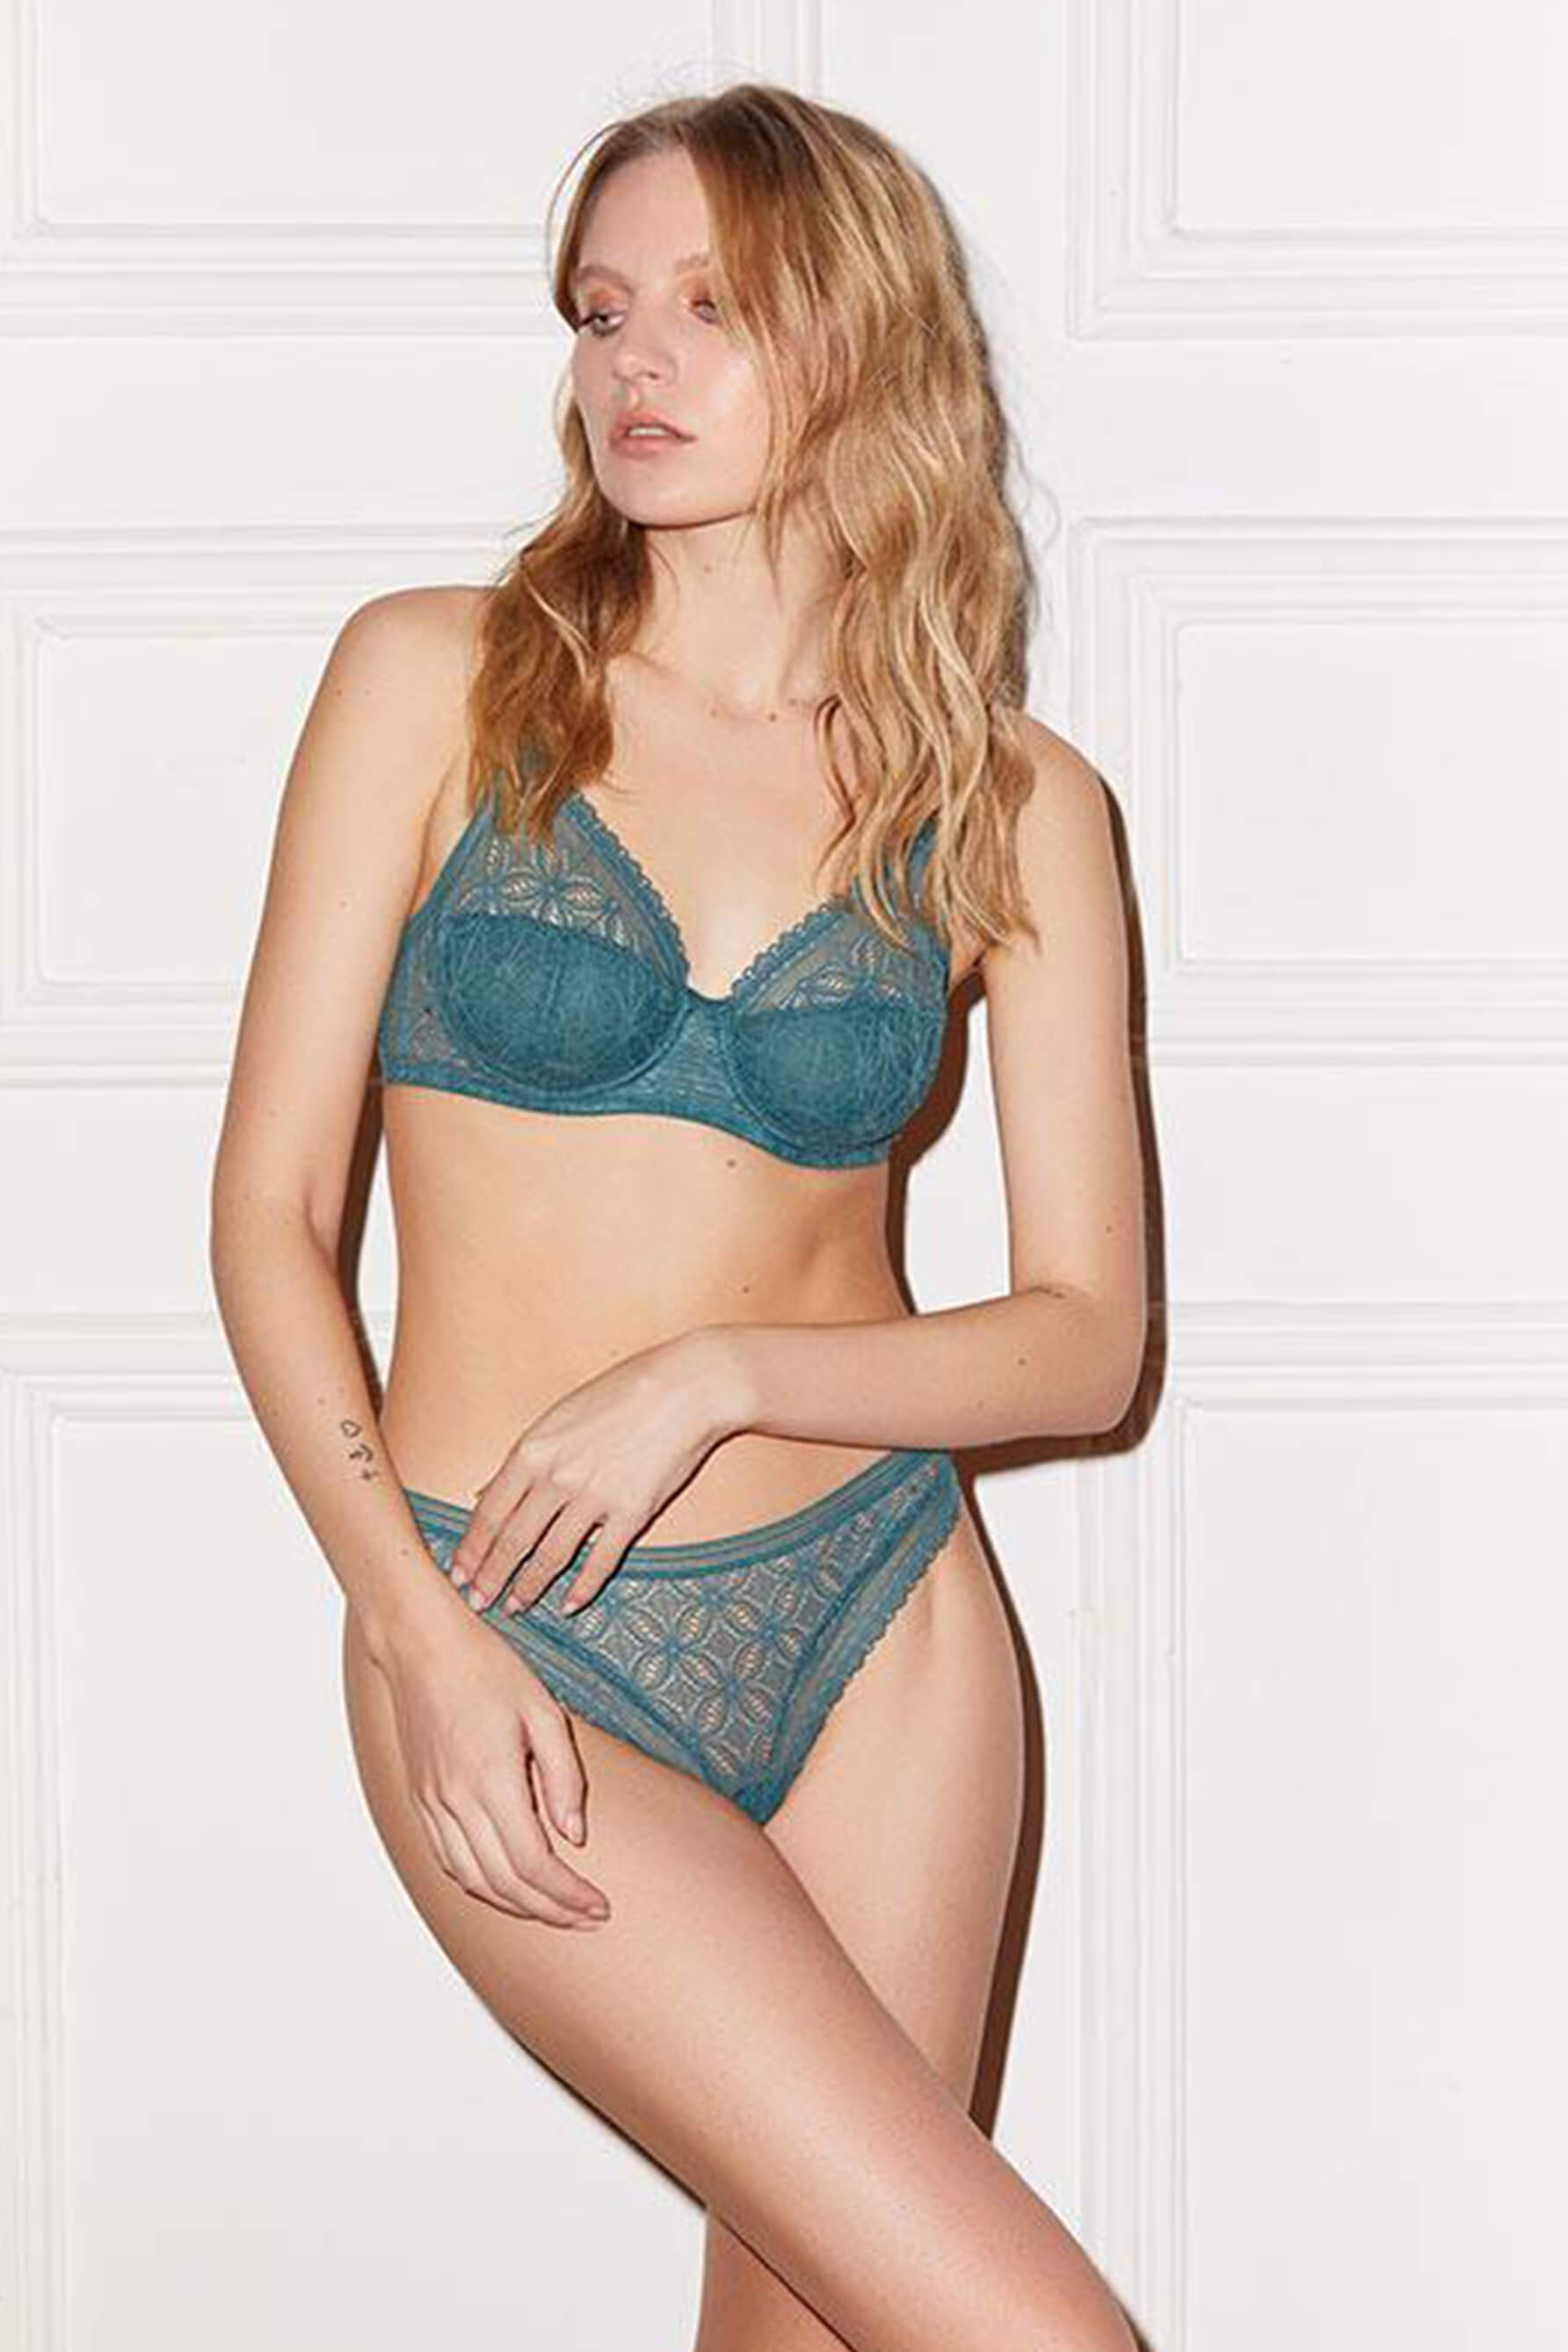 Else Chloe Thong and Underwire Bra in Jade Green